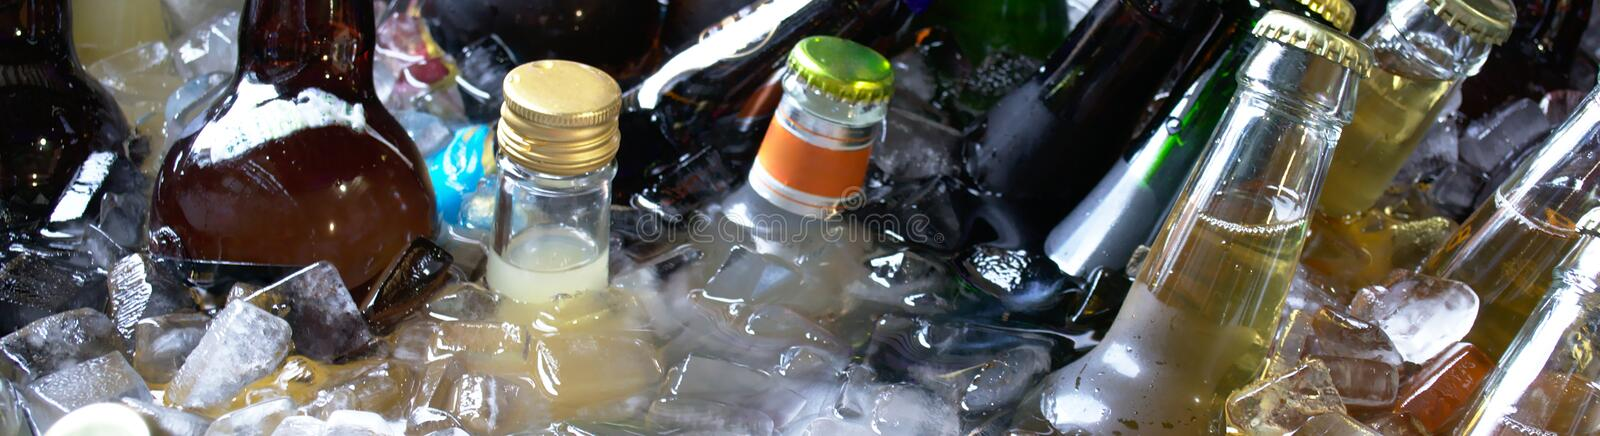 Bottles of cold drinks in the barrel with ice in the hot summer day royalty free stock photo